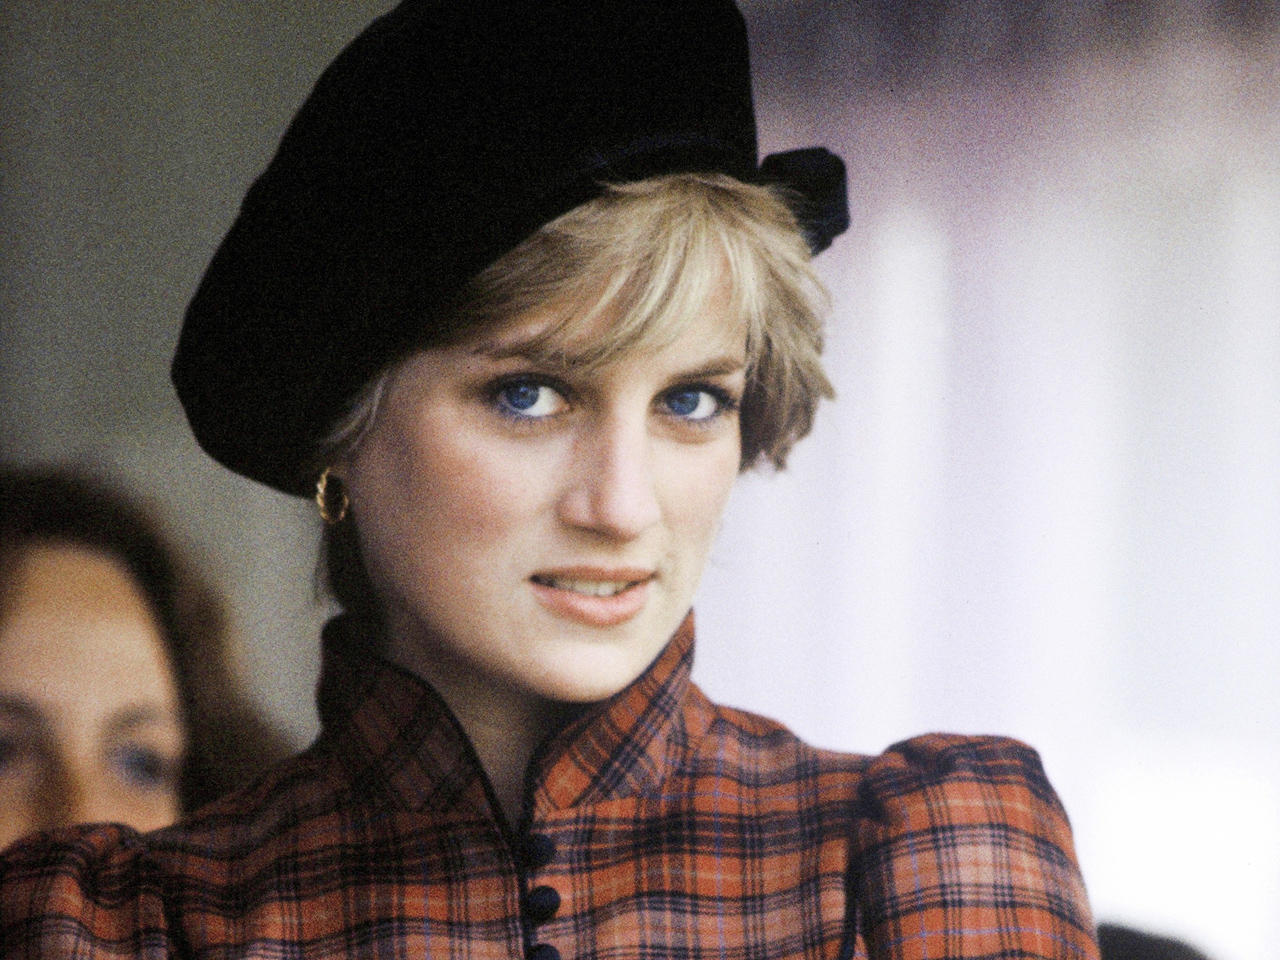 princess diana a life changer A look back at princess diana's life these candid moments capture her life as a mom, a royal, and a woman of the people.